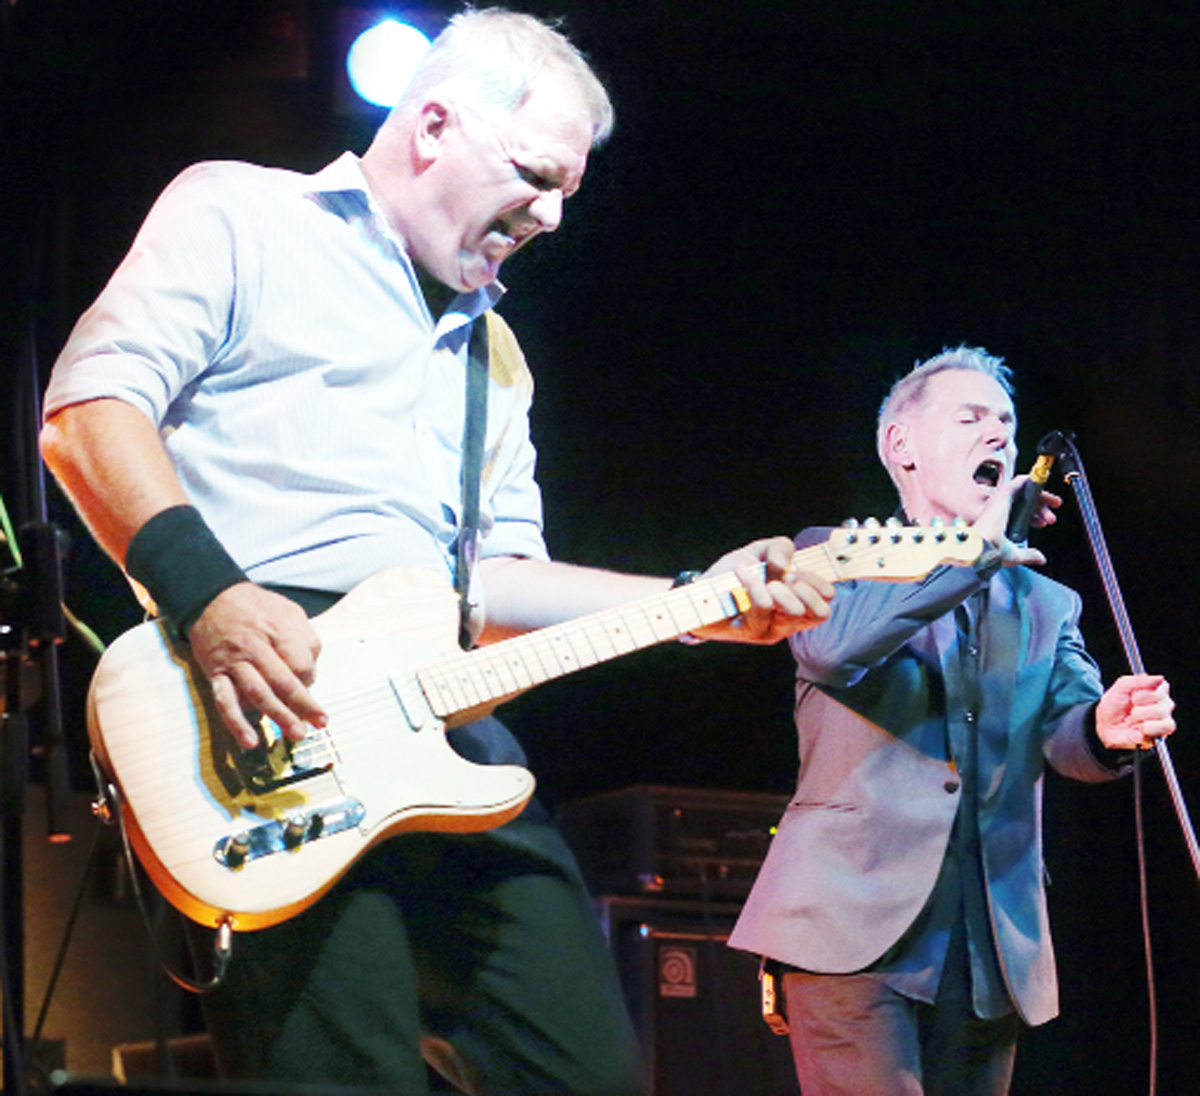 Dr Feelgood in action at the festival